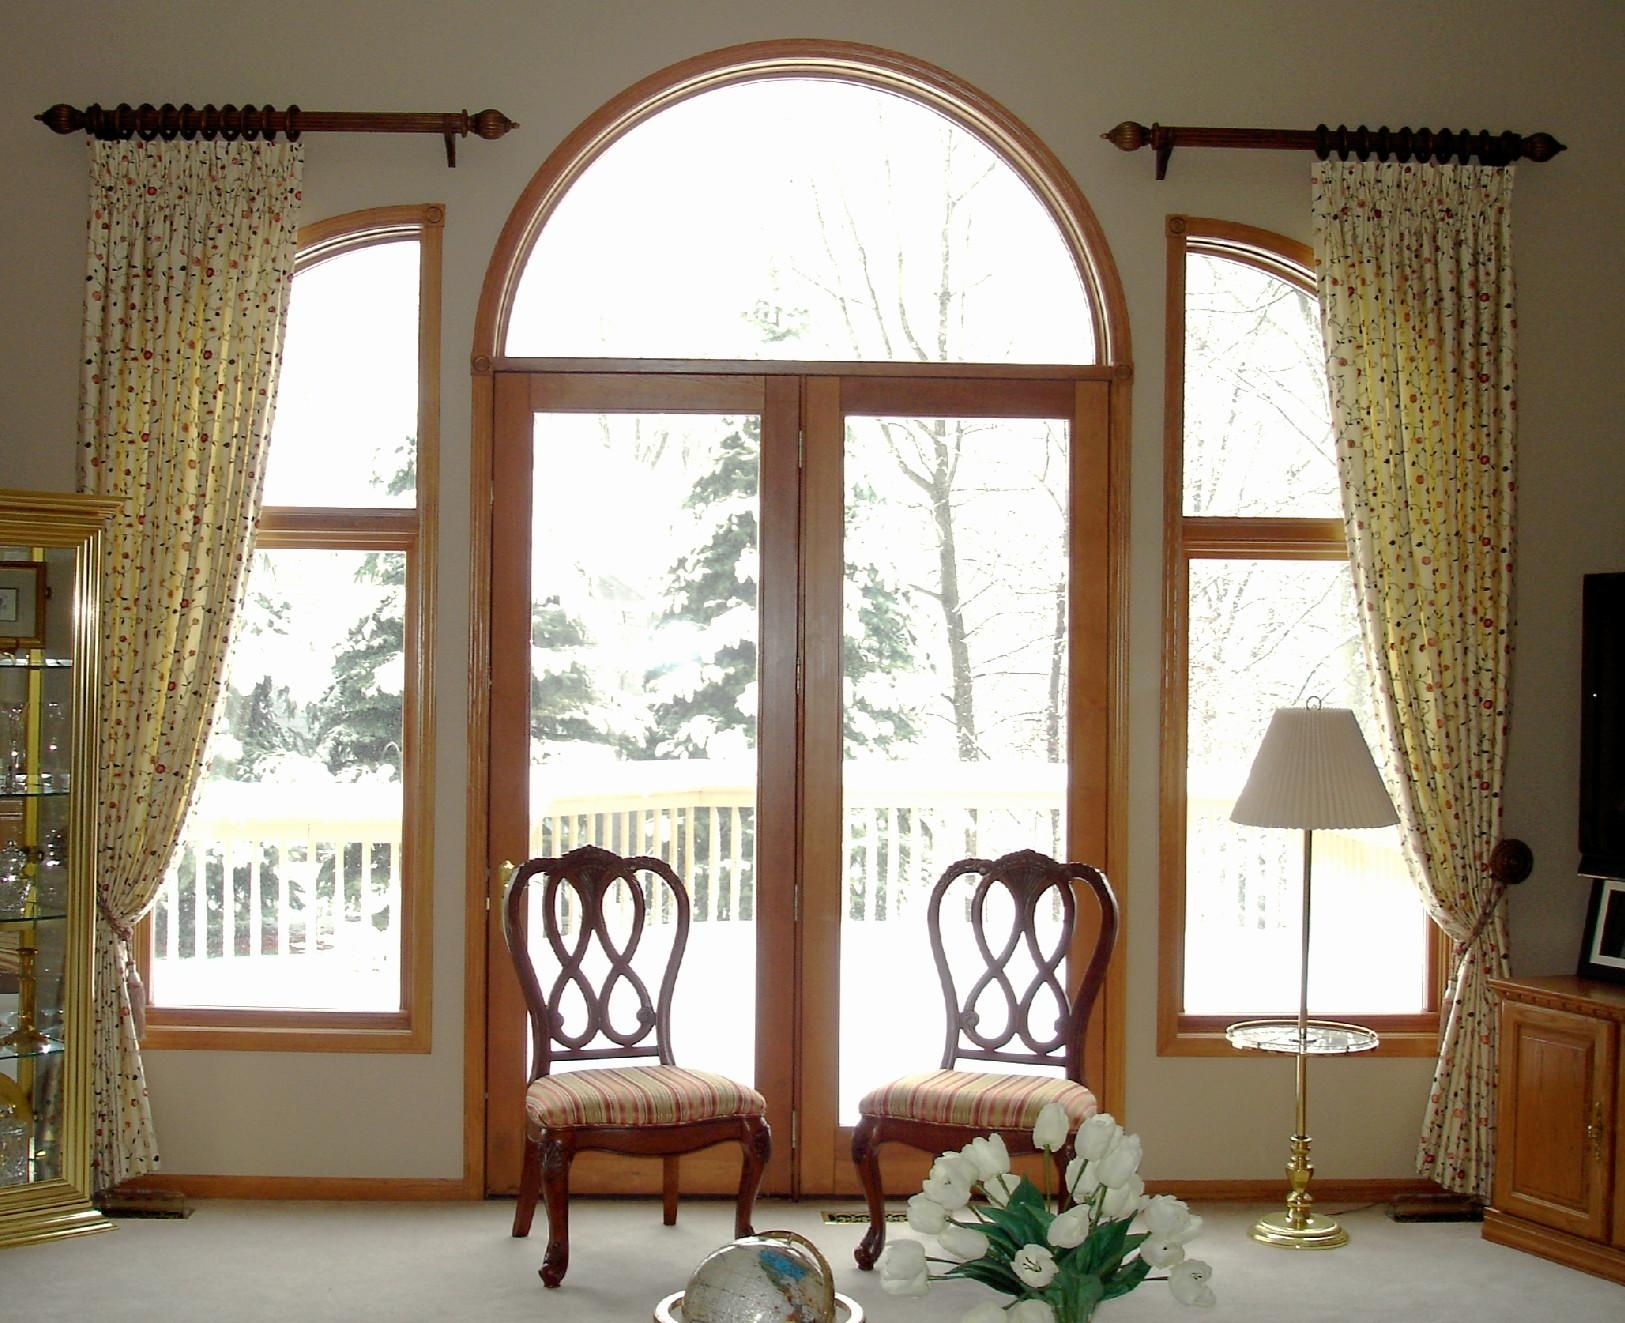 Lovely Wooden Window Curtains 16 Elegant Room With Simple Interior - Interior Design Tips